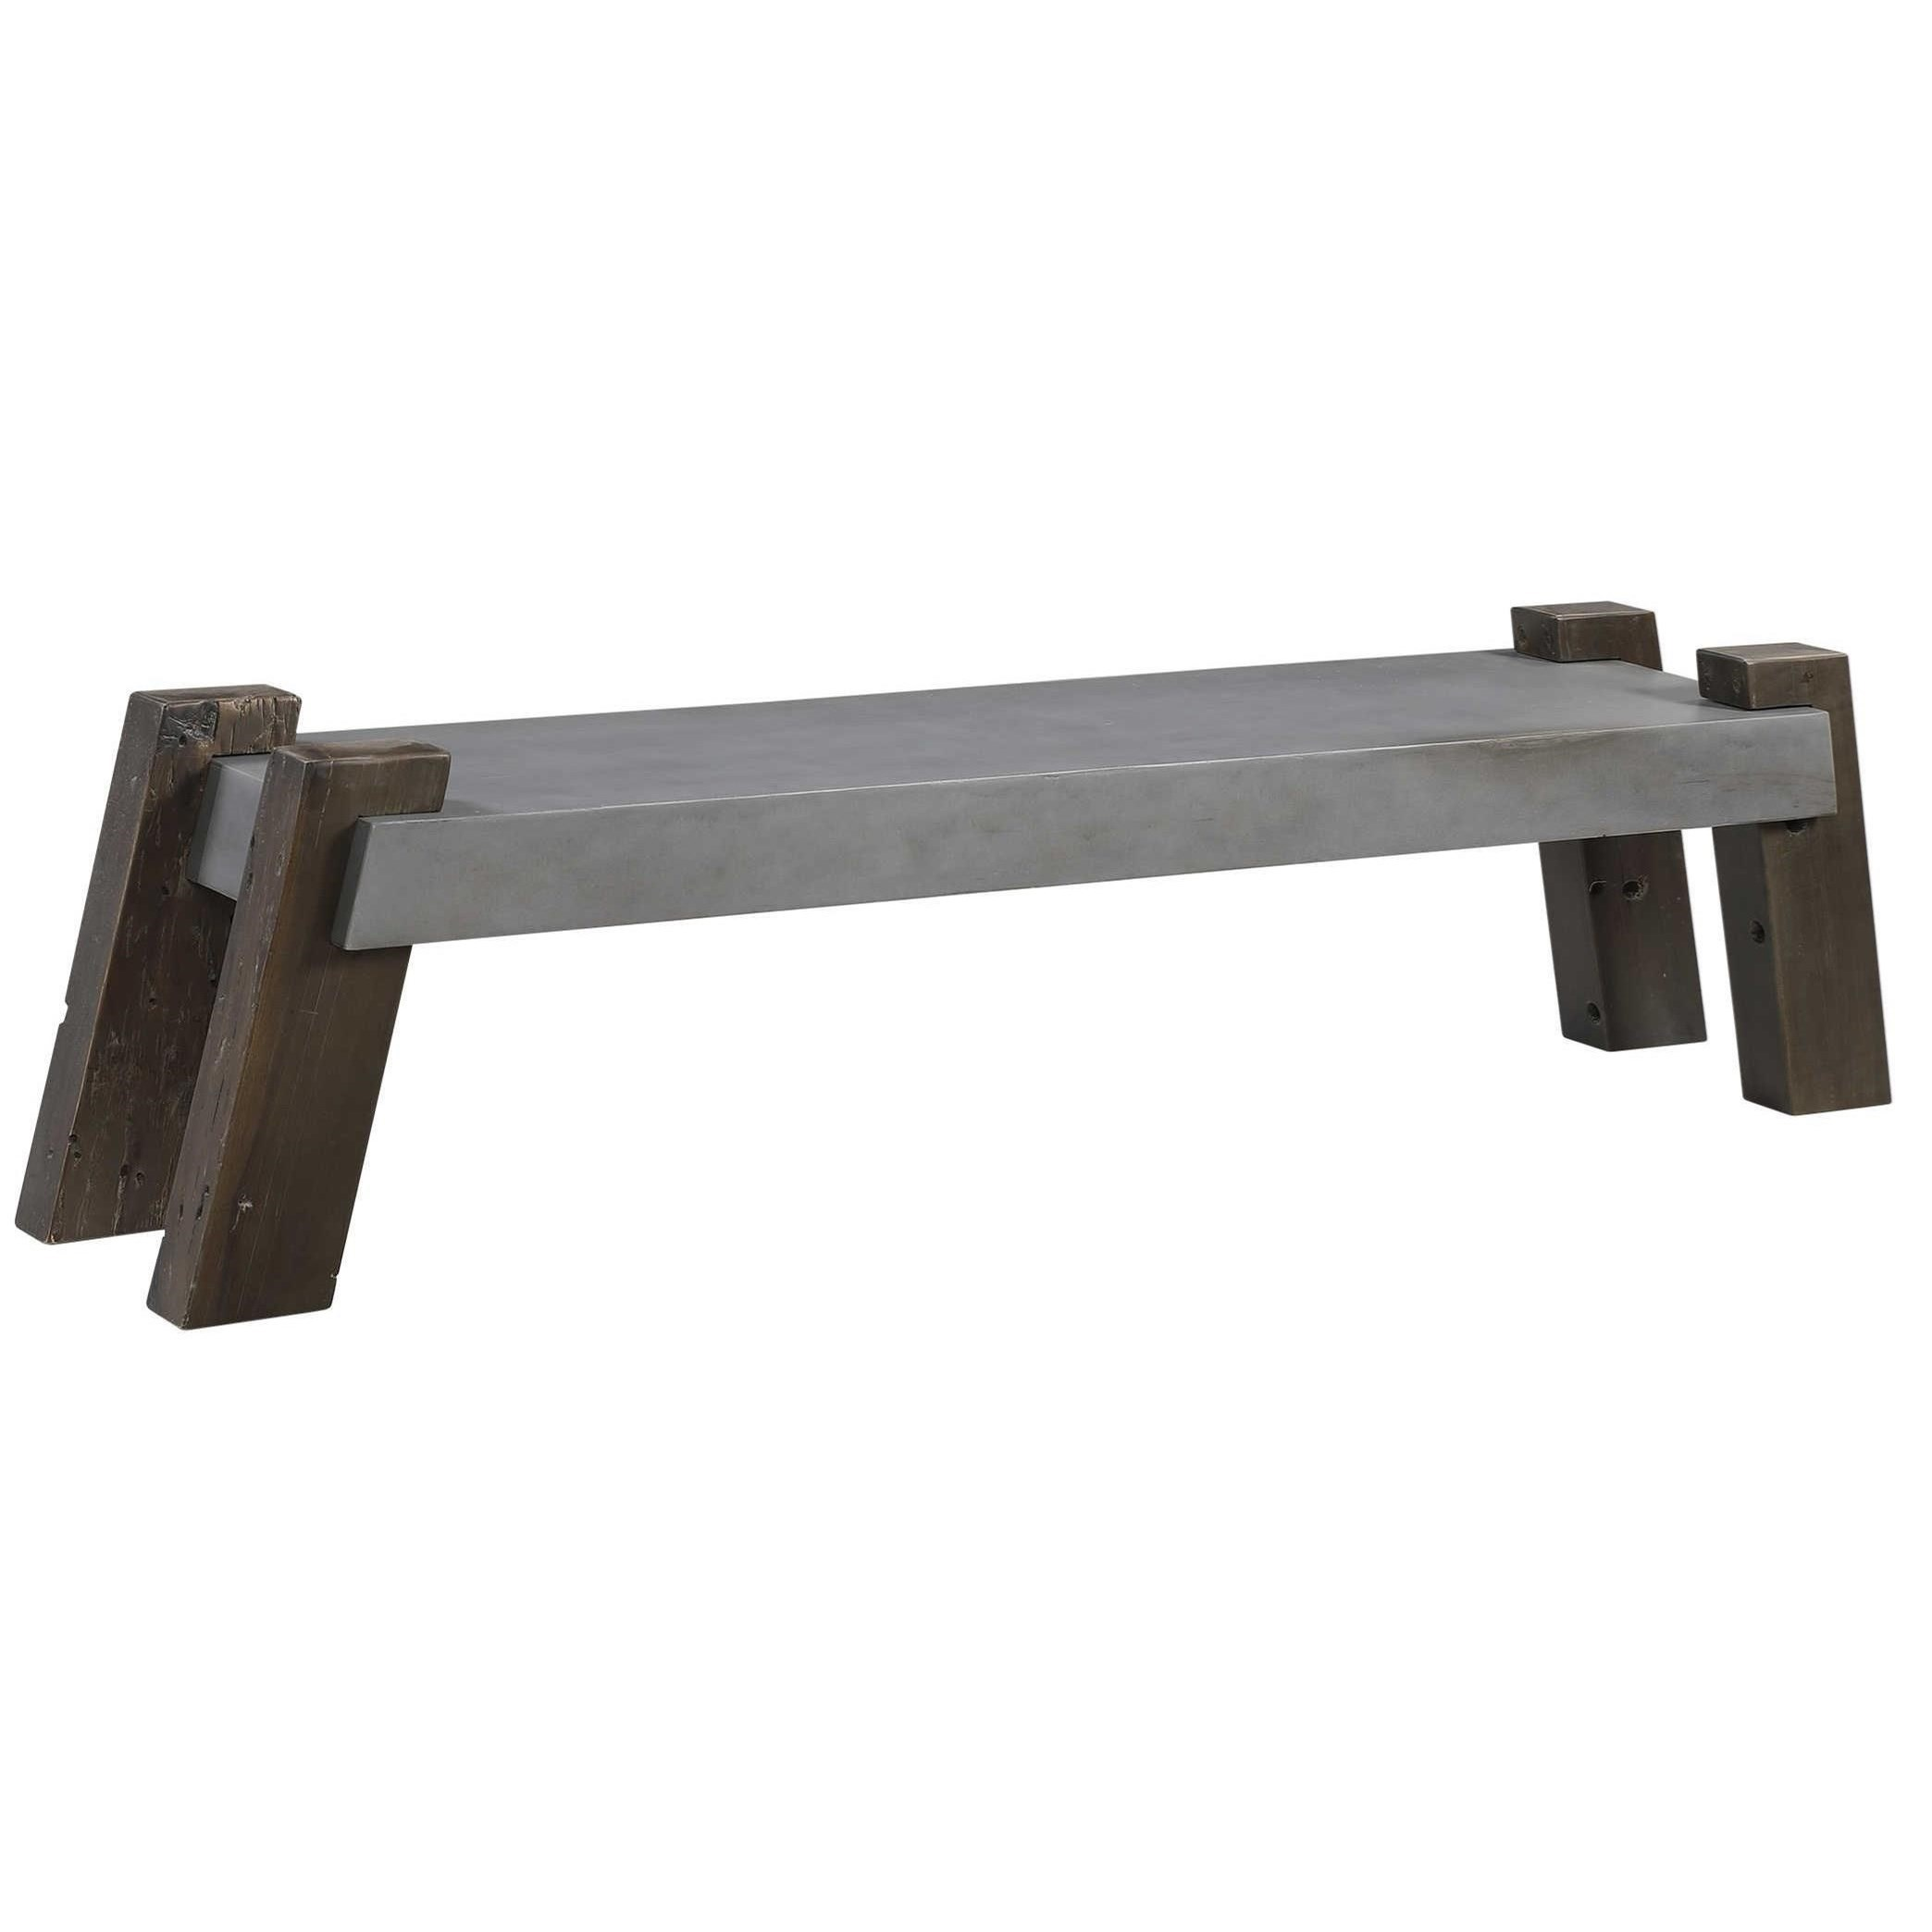 Accent Furniture - Benches Lavin Industrial Concrete Bench by Uttermost at Factory Direct Furniture